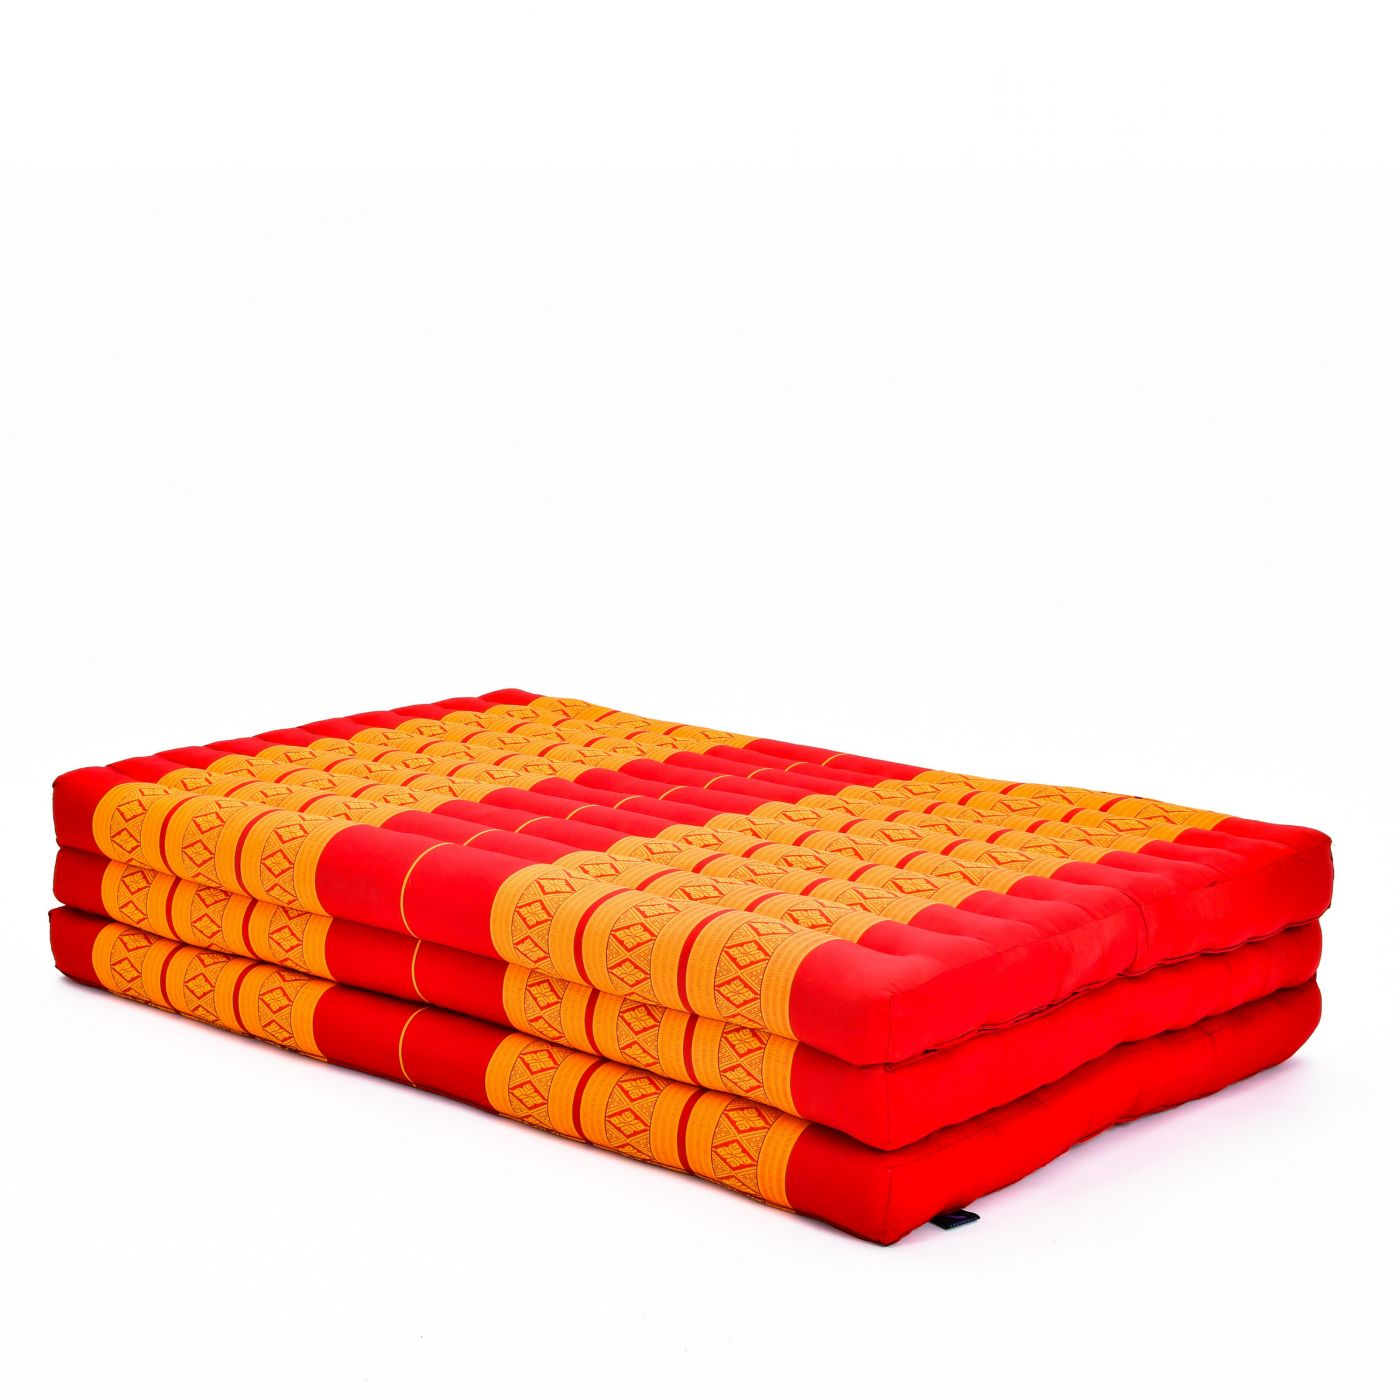 Leewadee Large Foldable Thai Mattress 82x46x3 Inches Guest Bed